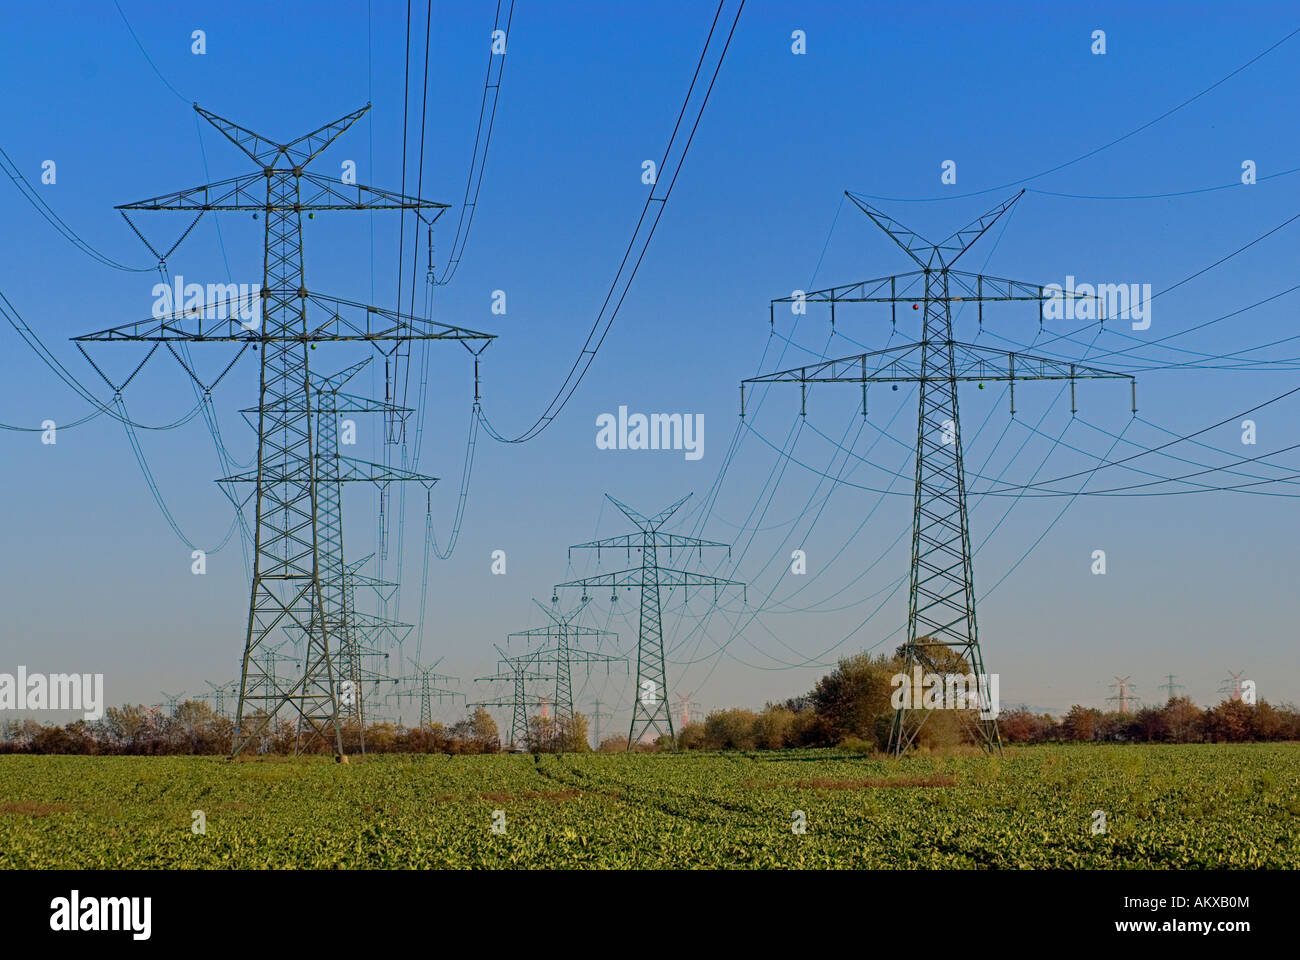 High-voltage power lines in a rural landscape in Northern Germany - Stock Image